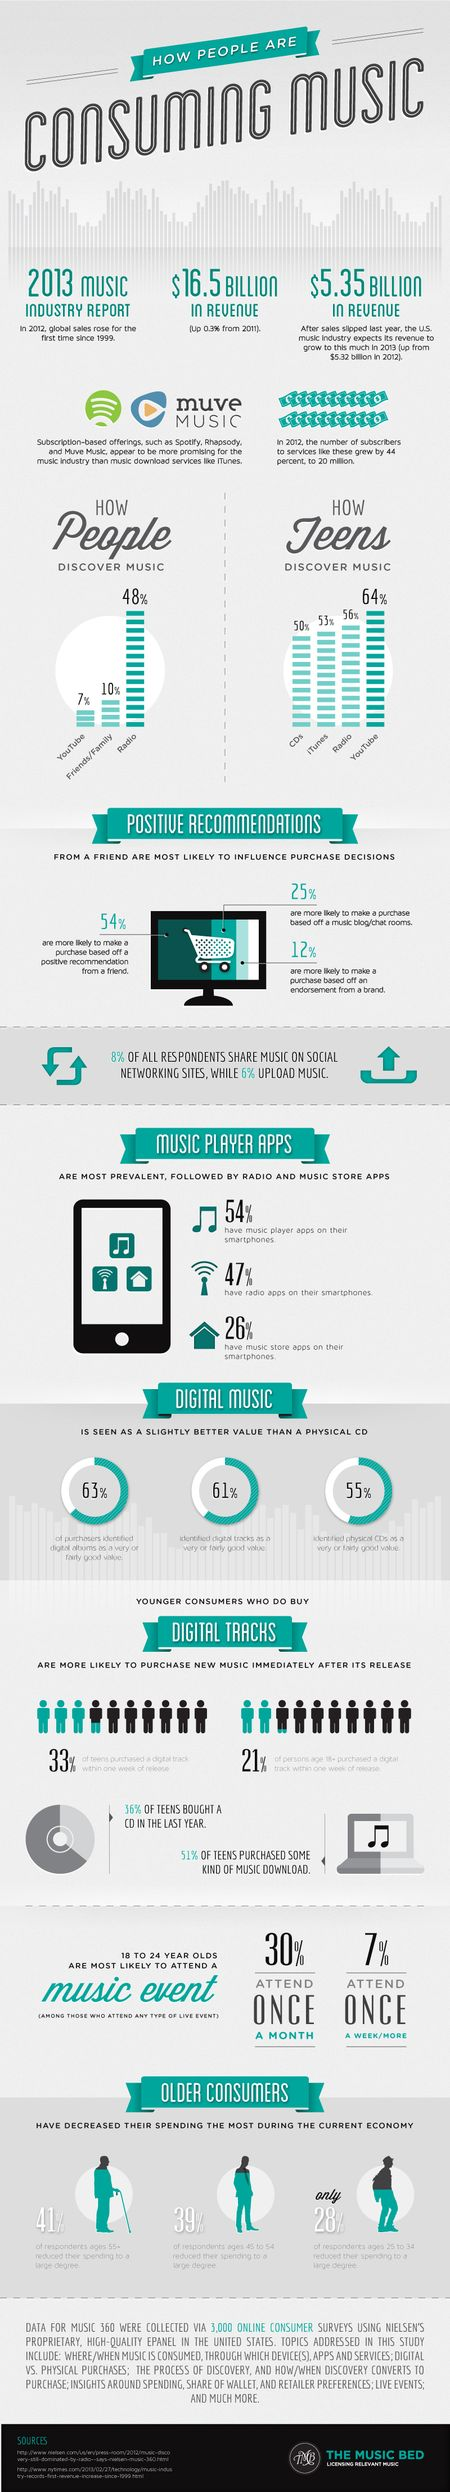 music consumption infographic